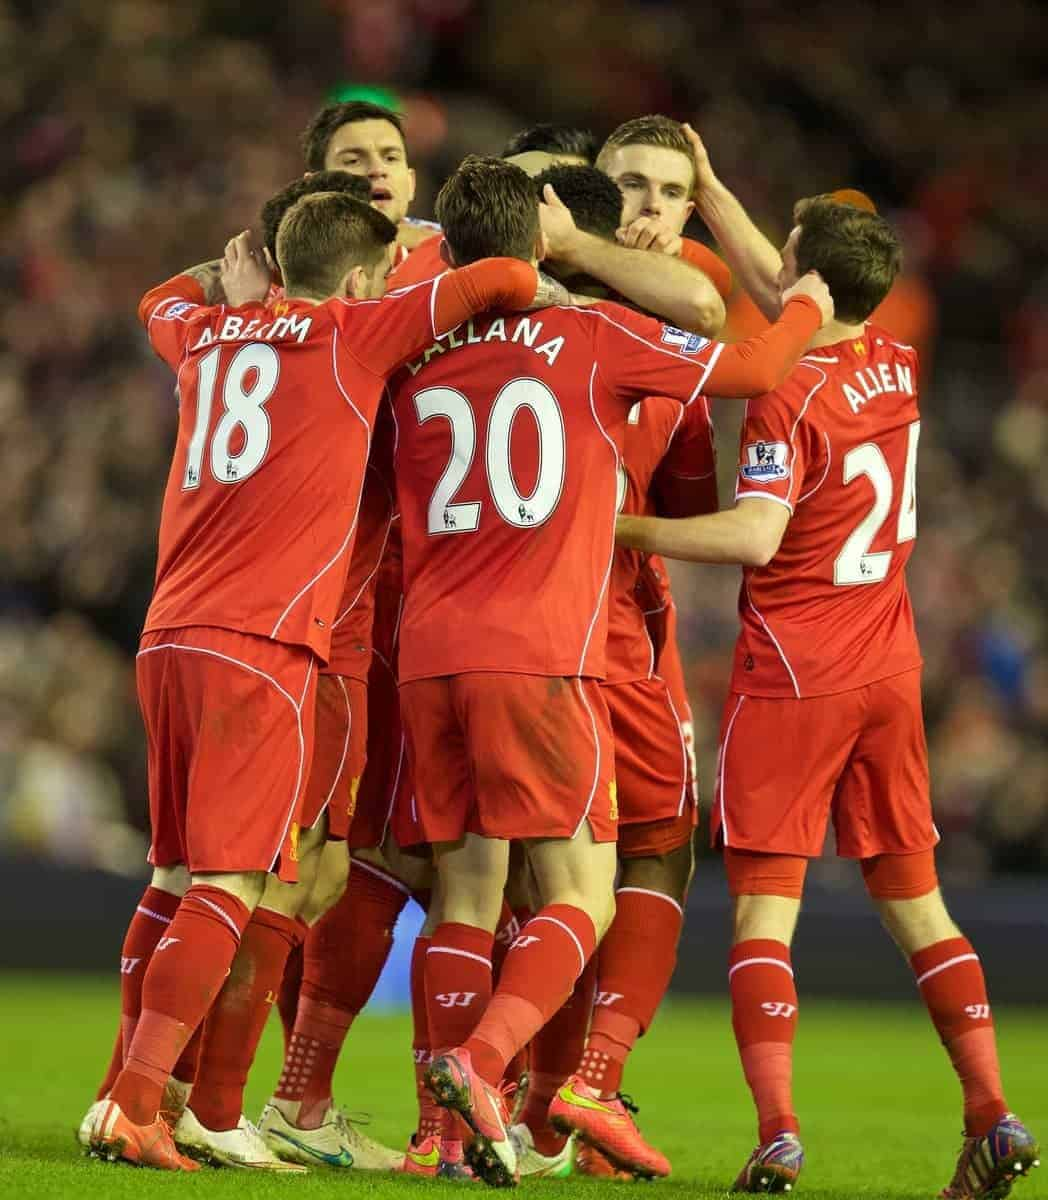 LIVERPOOL, ENGLAND - Wednesday, March 4, 2015: Liverpool's celebrates scoring the second goal against Burnley during the Premier League match at Anfield. (Pic by David Rawcliffe/Propaganda)